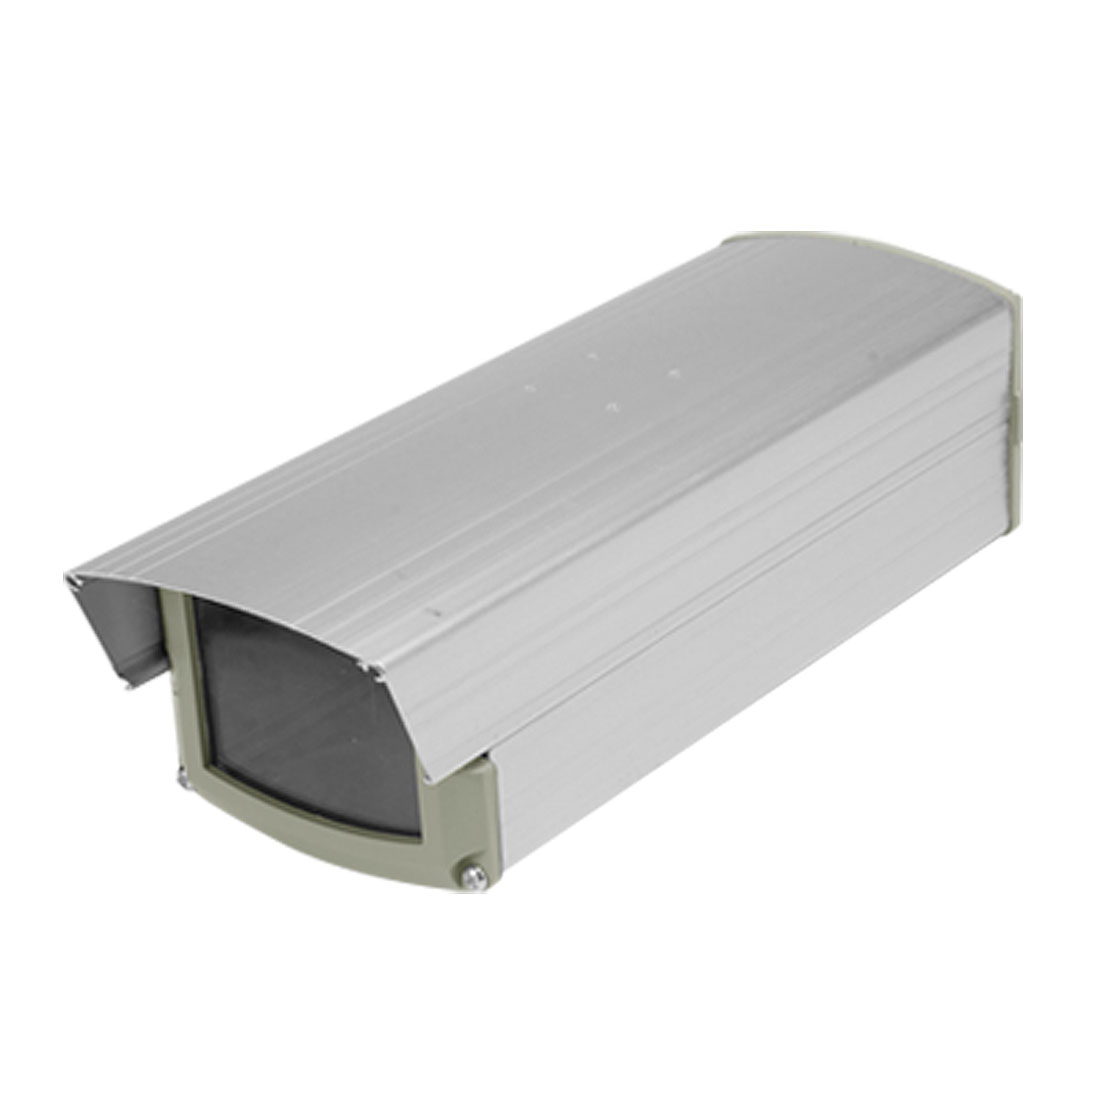 Silver Tone Case Box Housing Aluminium for Camera Security CCTV